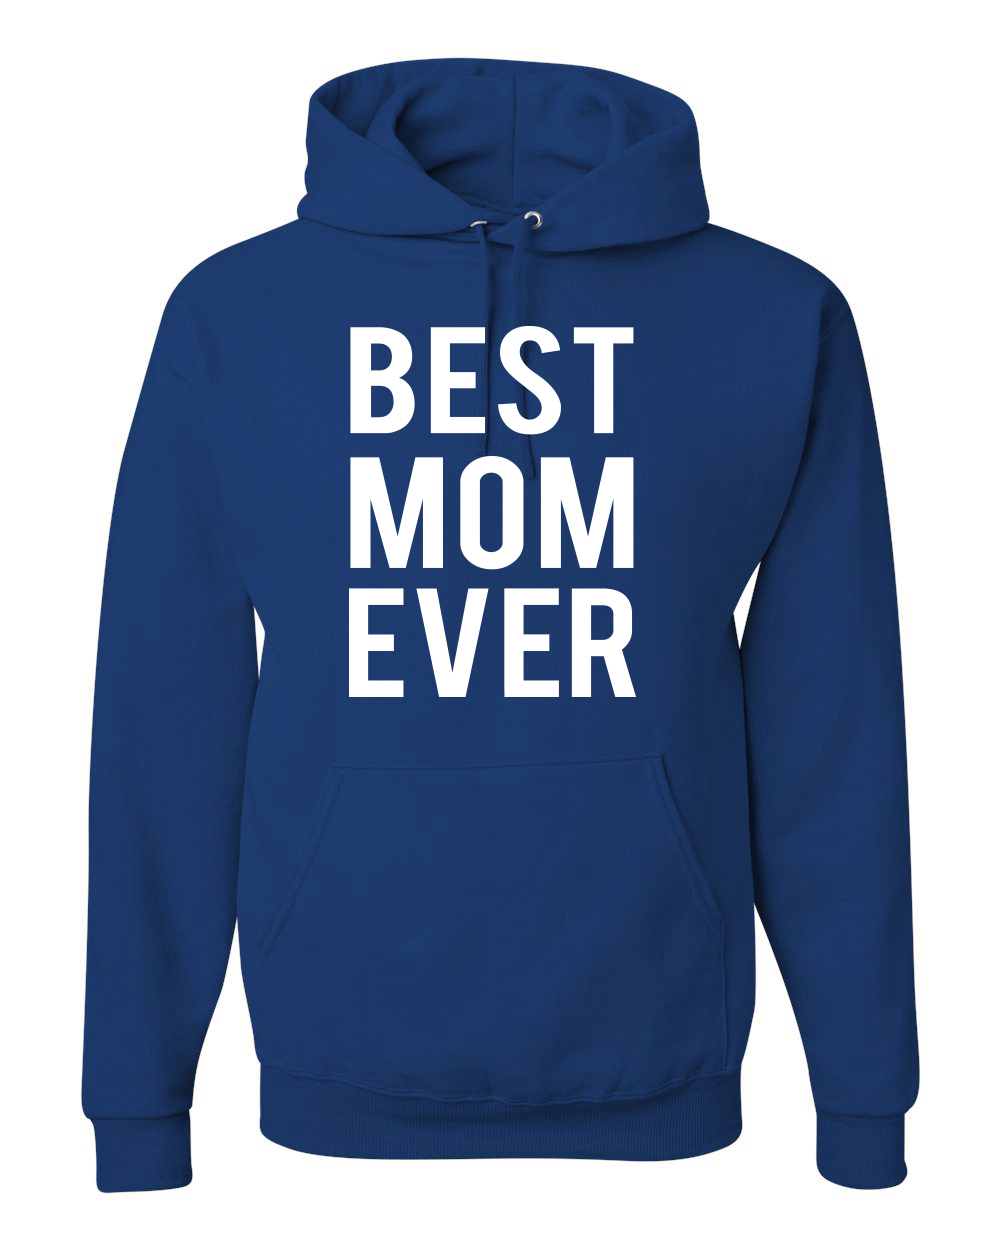 Sweatshirt Royal Blue Worlds Greatest mom Mothers Day